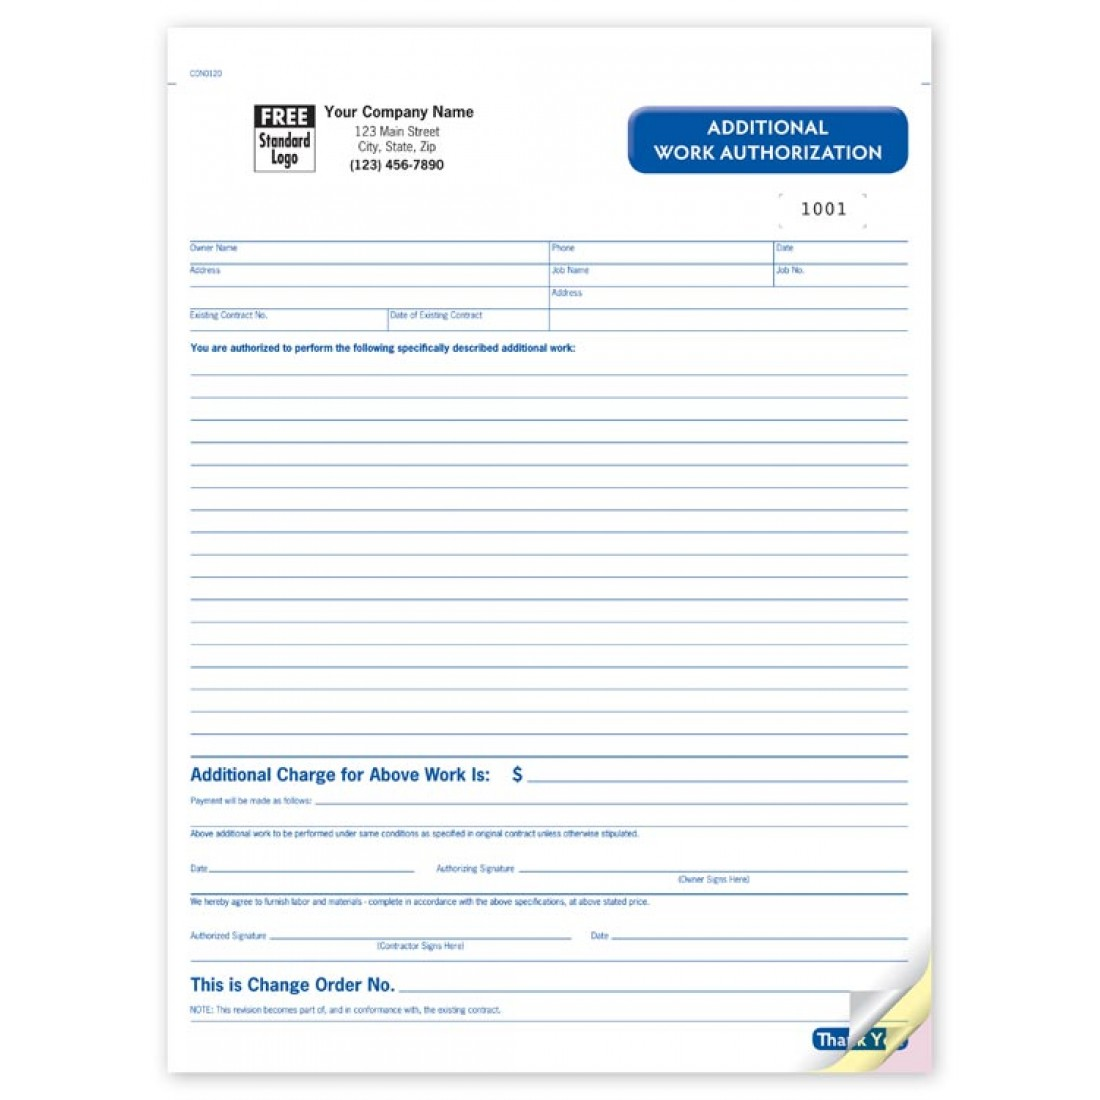 Additional Work Authorization Forms